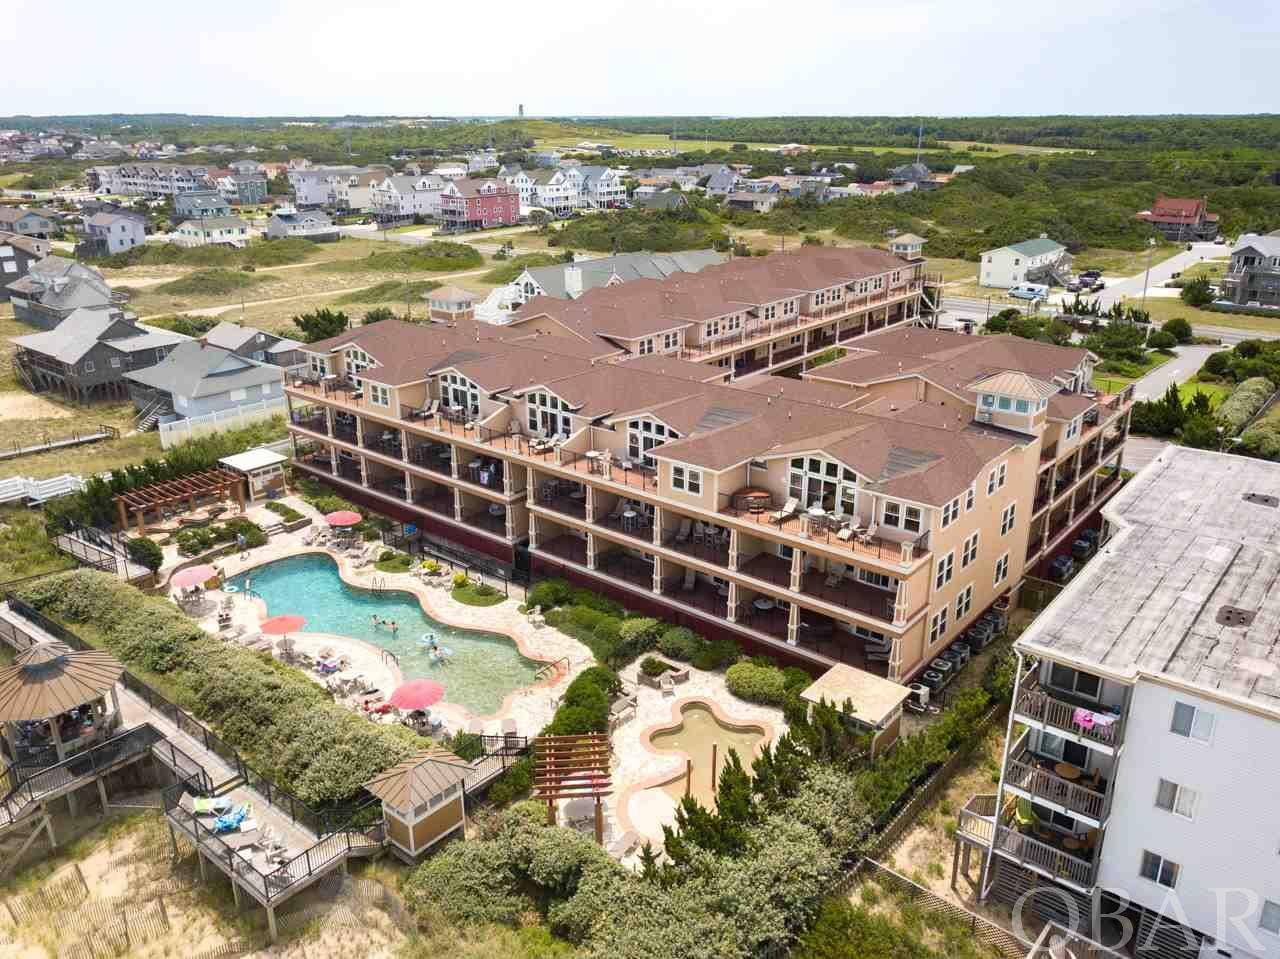 1319 Virginia Dare Trail, Kill Devil Hills, NC 27948, 2 Bedrooms Bedrooms, ,3 BathroomsBathrooms,Residential,For sale,Virginia Dare Trail,106315